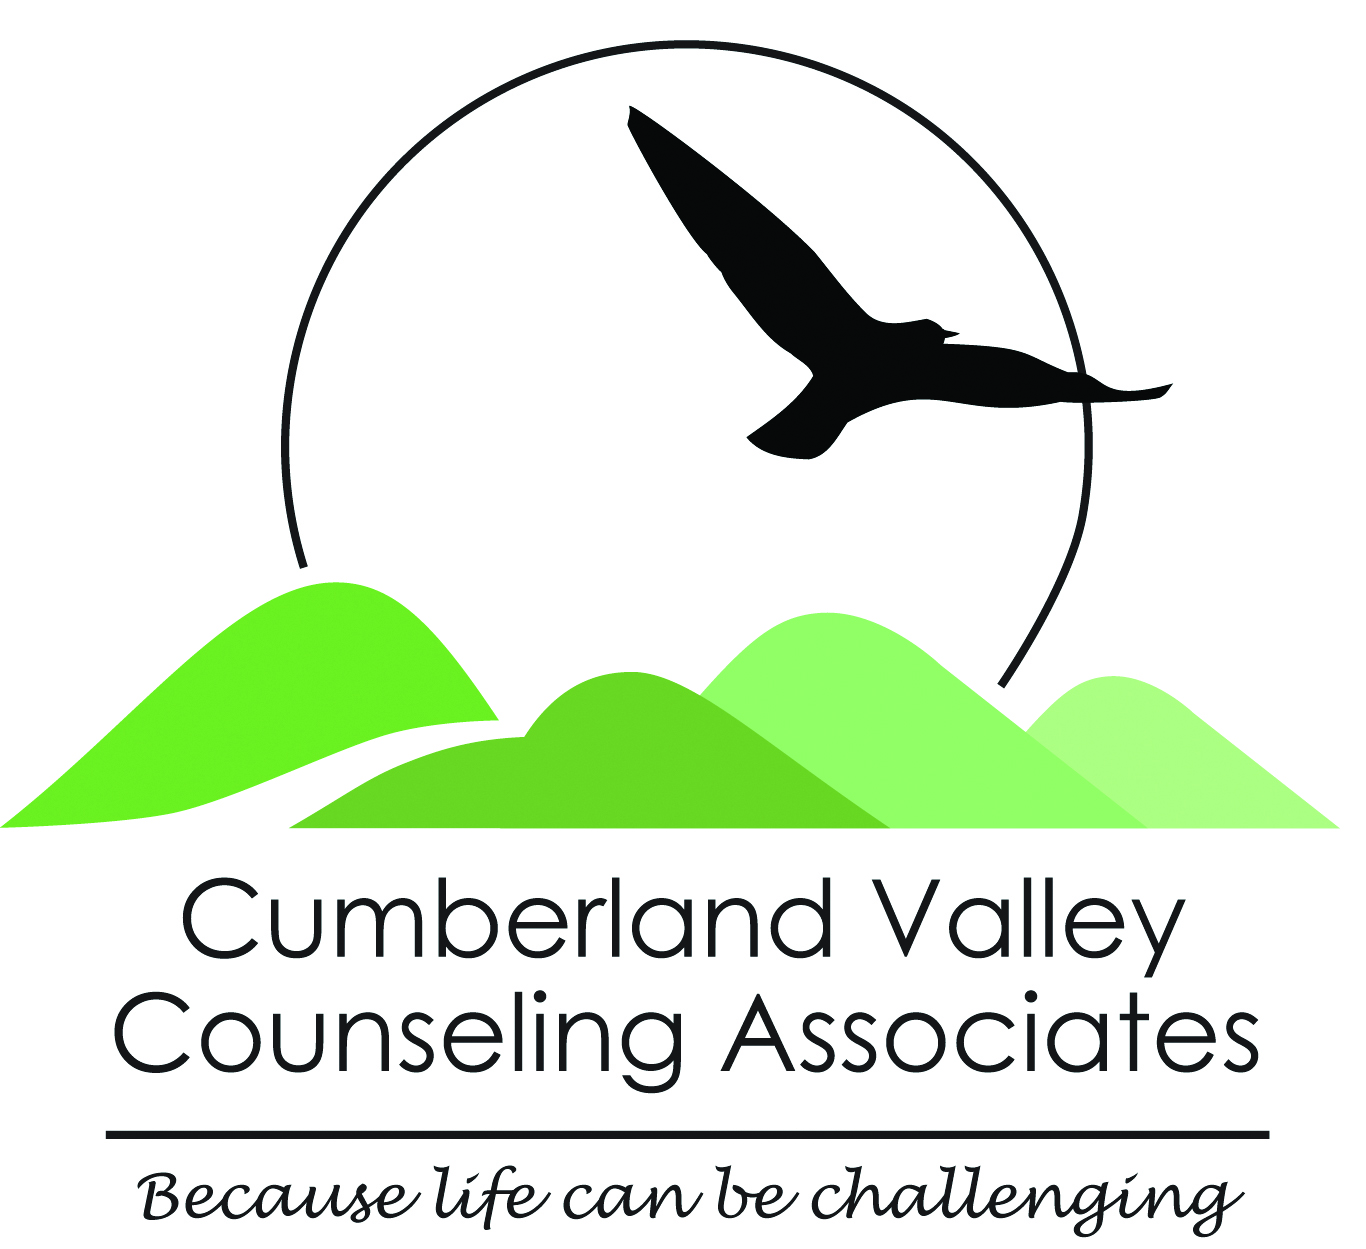 Cumberland Valley Counseling Associates Logo - Image